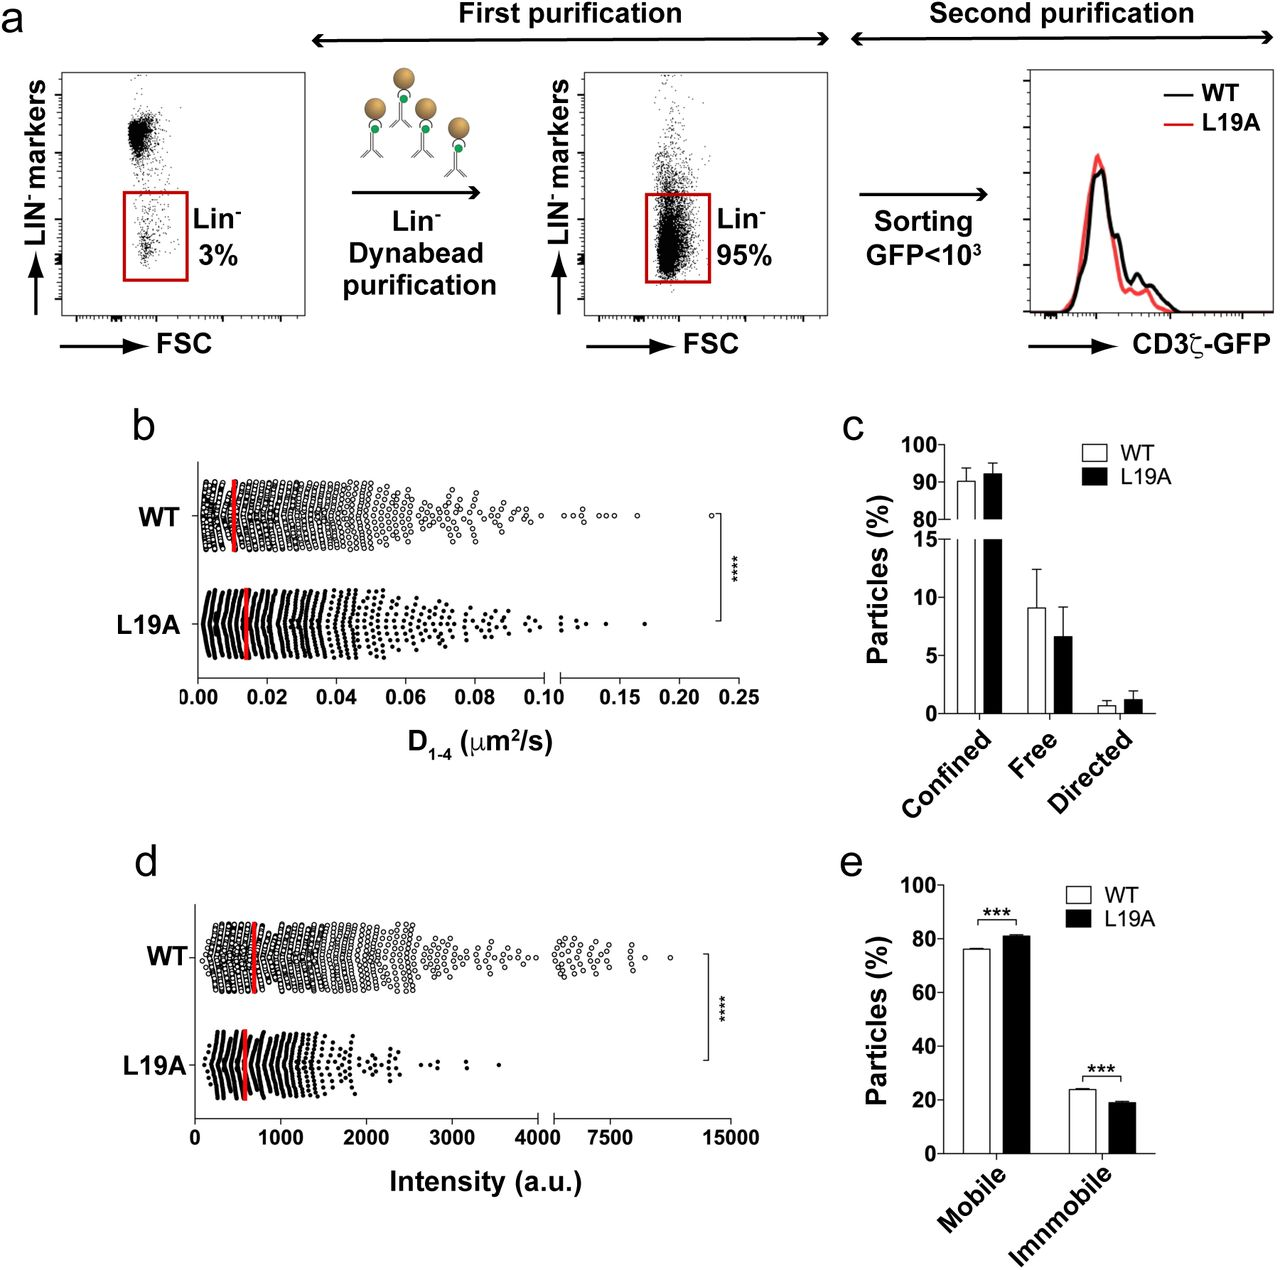 TIFRM analysis of the pre-TCR on CD44 - primary thymocytes. (a) Purification strategy of DN CD44 - thymocytes through two purification steps, depleting Lin + thymocytes from pools of three thymi of each transgenic mouse line, followed by sorting CD44 - LIN - cells with a cut-off of GFP fluorescence intensity of 10 3 relative units. (b) Median of the short time-lag diffusion coefficient (D 1-4 ) of the mobile particles detected in the analysis. (c) Quantification of the percentage (mean ± SEM) of mobile particles for confined, free and directed diffusion tracks (d) Quantification of the mean fluorescent intensity of each spot during the first 20 frames in which the particles are visible. Each dot in the graph presents single CD3ζ-GFP spot (e) Percentage (mean ± SEM) of mobile and immobile particles in the WT and L19A samples. Pooled data were obtained in 4 independent experiments encompassing on average 19.1 and 13.1 tracked particles per cell for 131 WT cells (range 20 - 57 cells/experiment) and 110 L19A cells (range 13 - 40 cells /experiment), respectively. P-values were calculated using an unpaired two-tailed Student's t test with 95% CI (***p